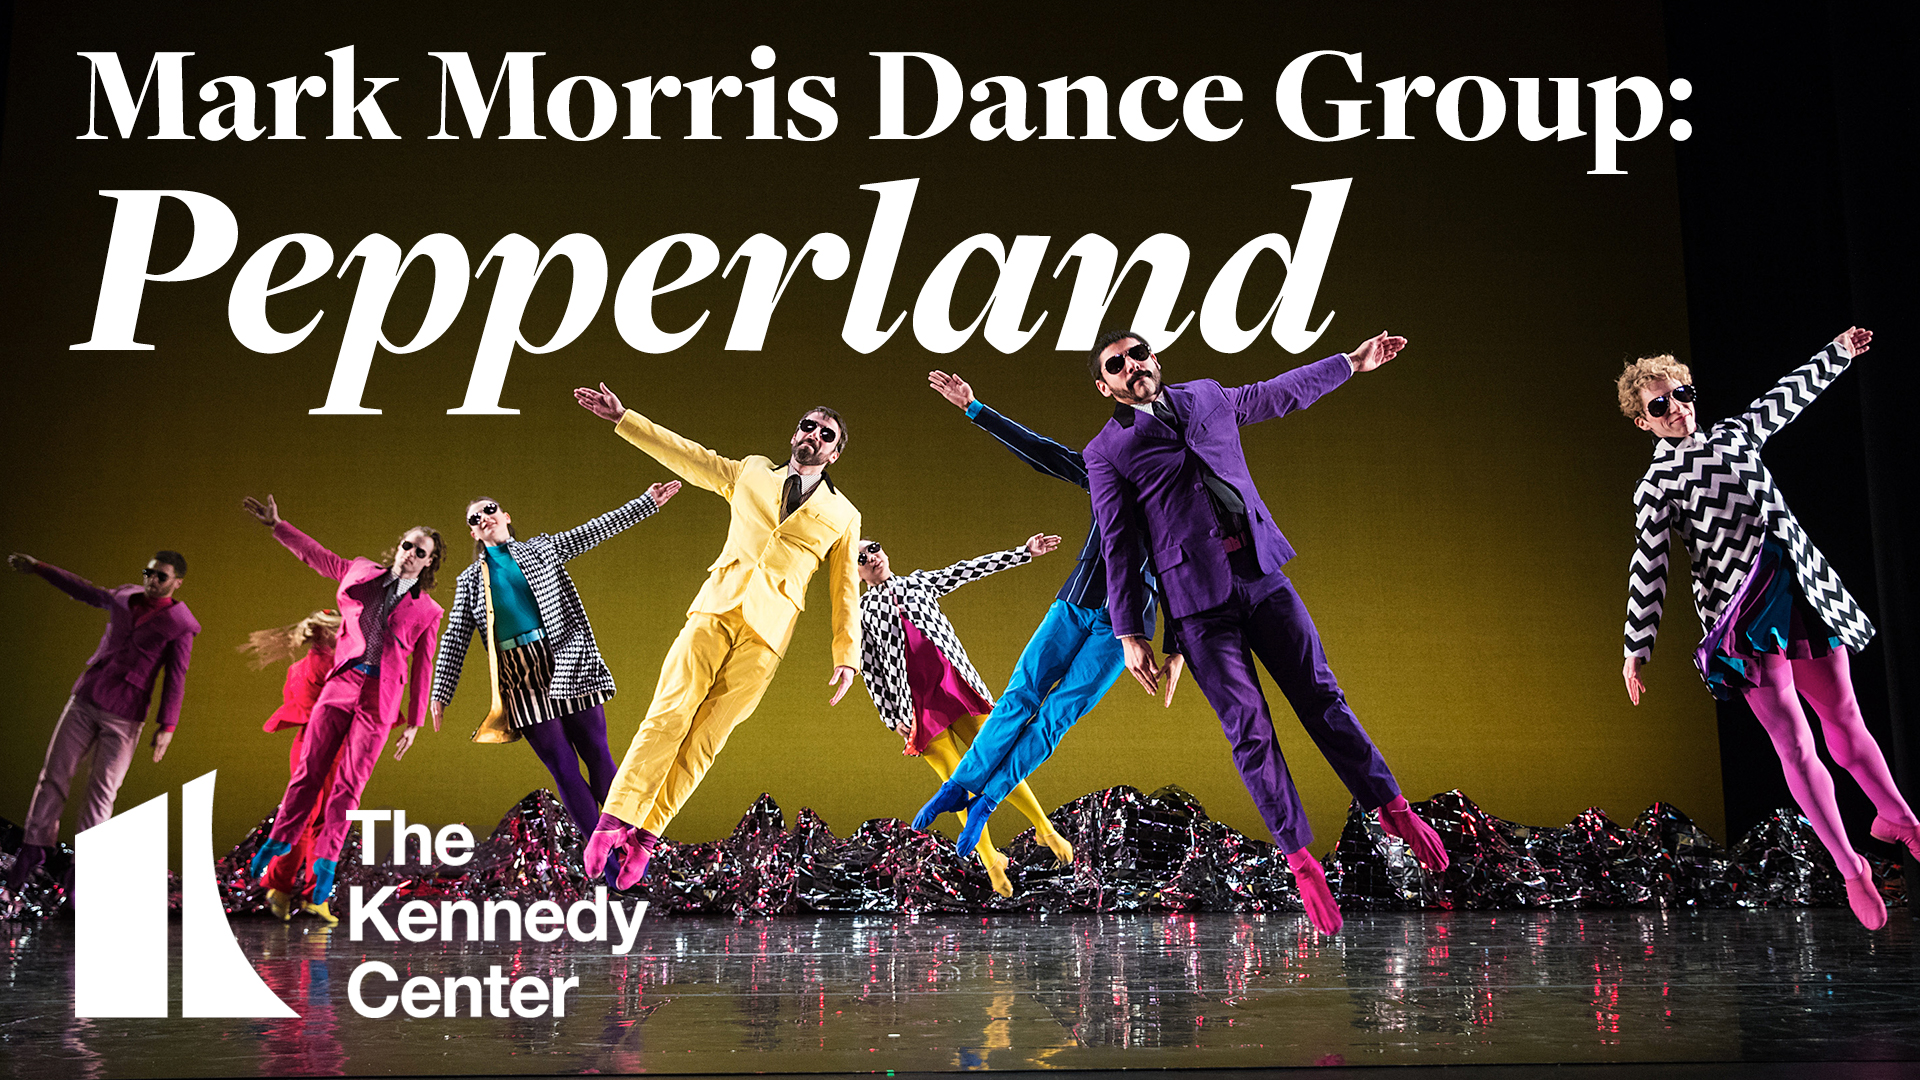 Mark Morris Dance Group: Pepperland | The Kennedy Center